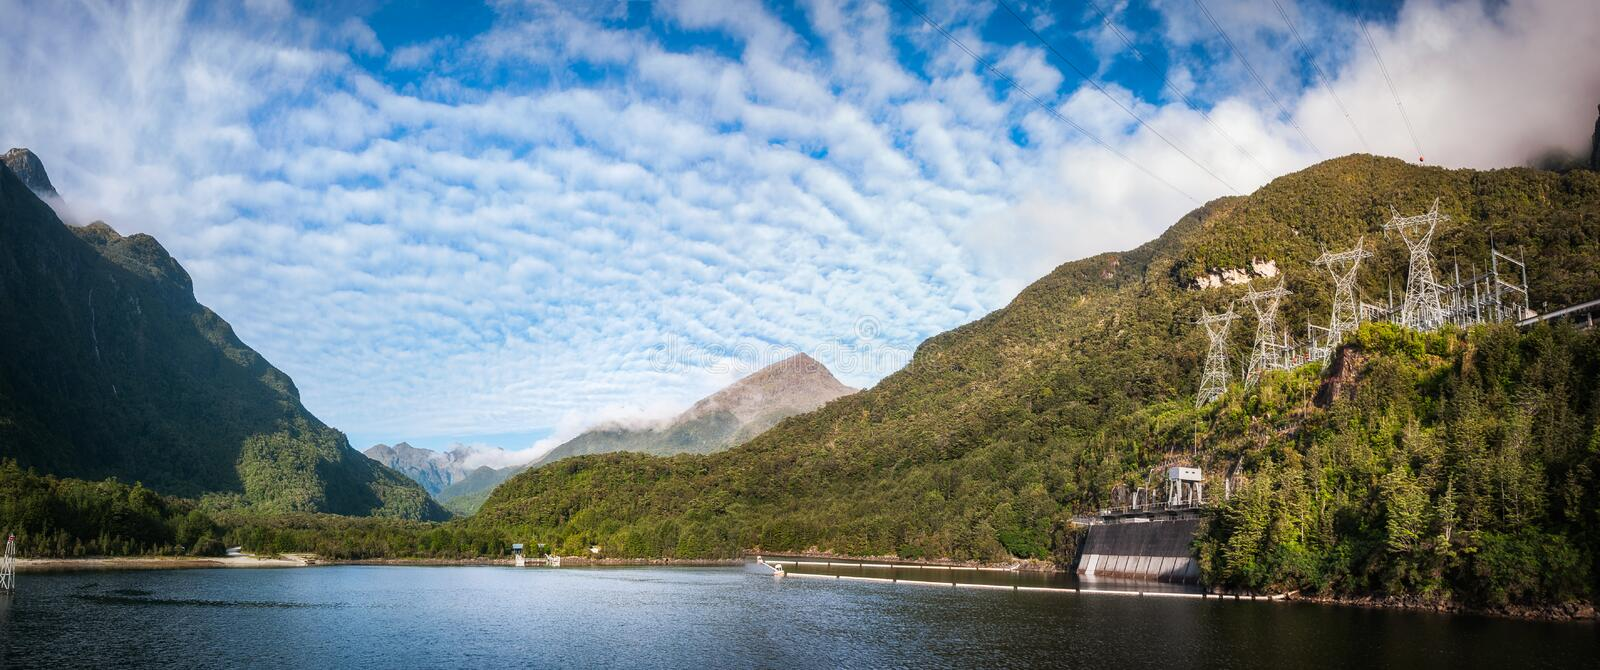 Download Hydro-Electrical Power Plant - Lake Manapouri, New Zealand. Stock Image - Image of beautiful, clouds: 118598533